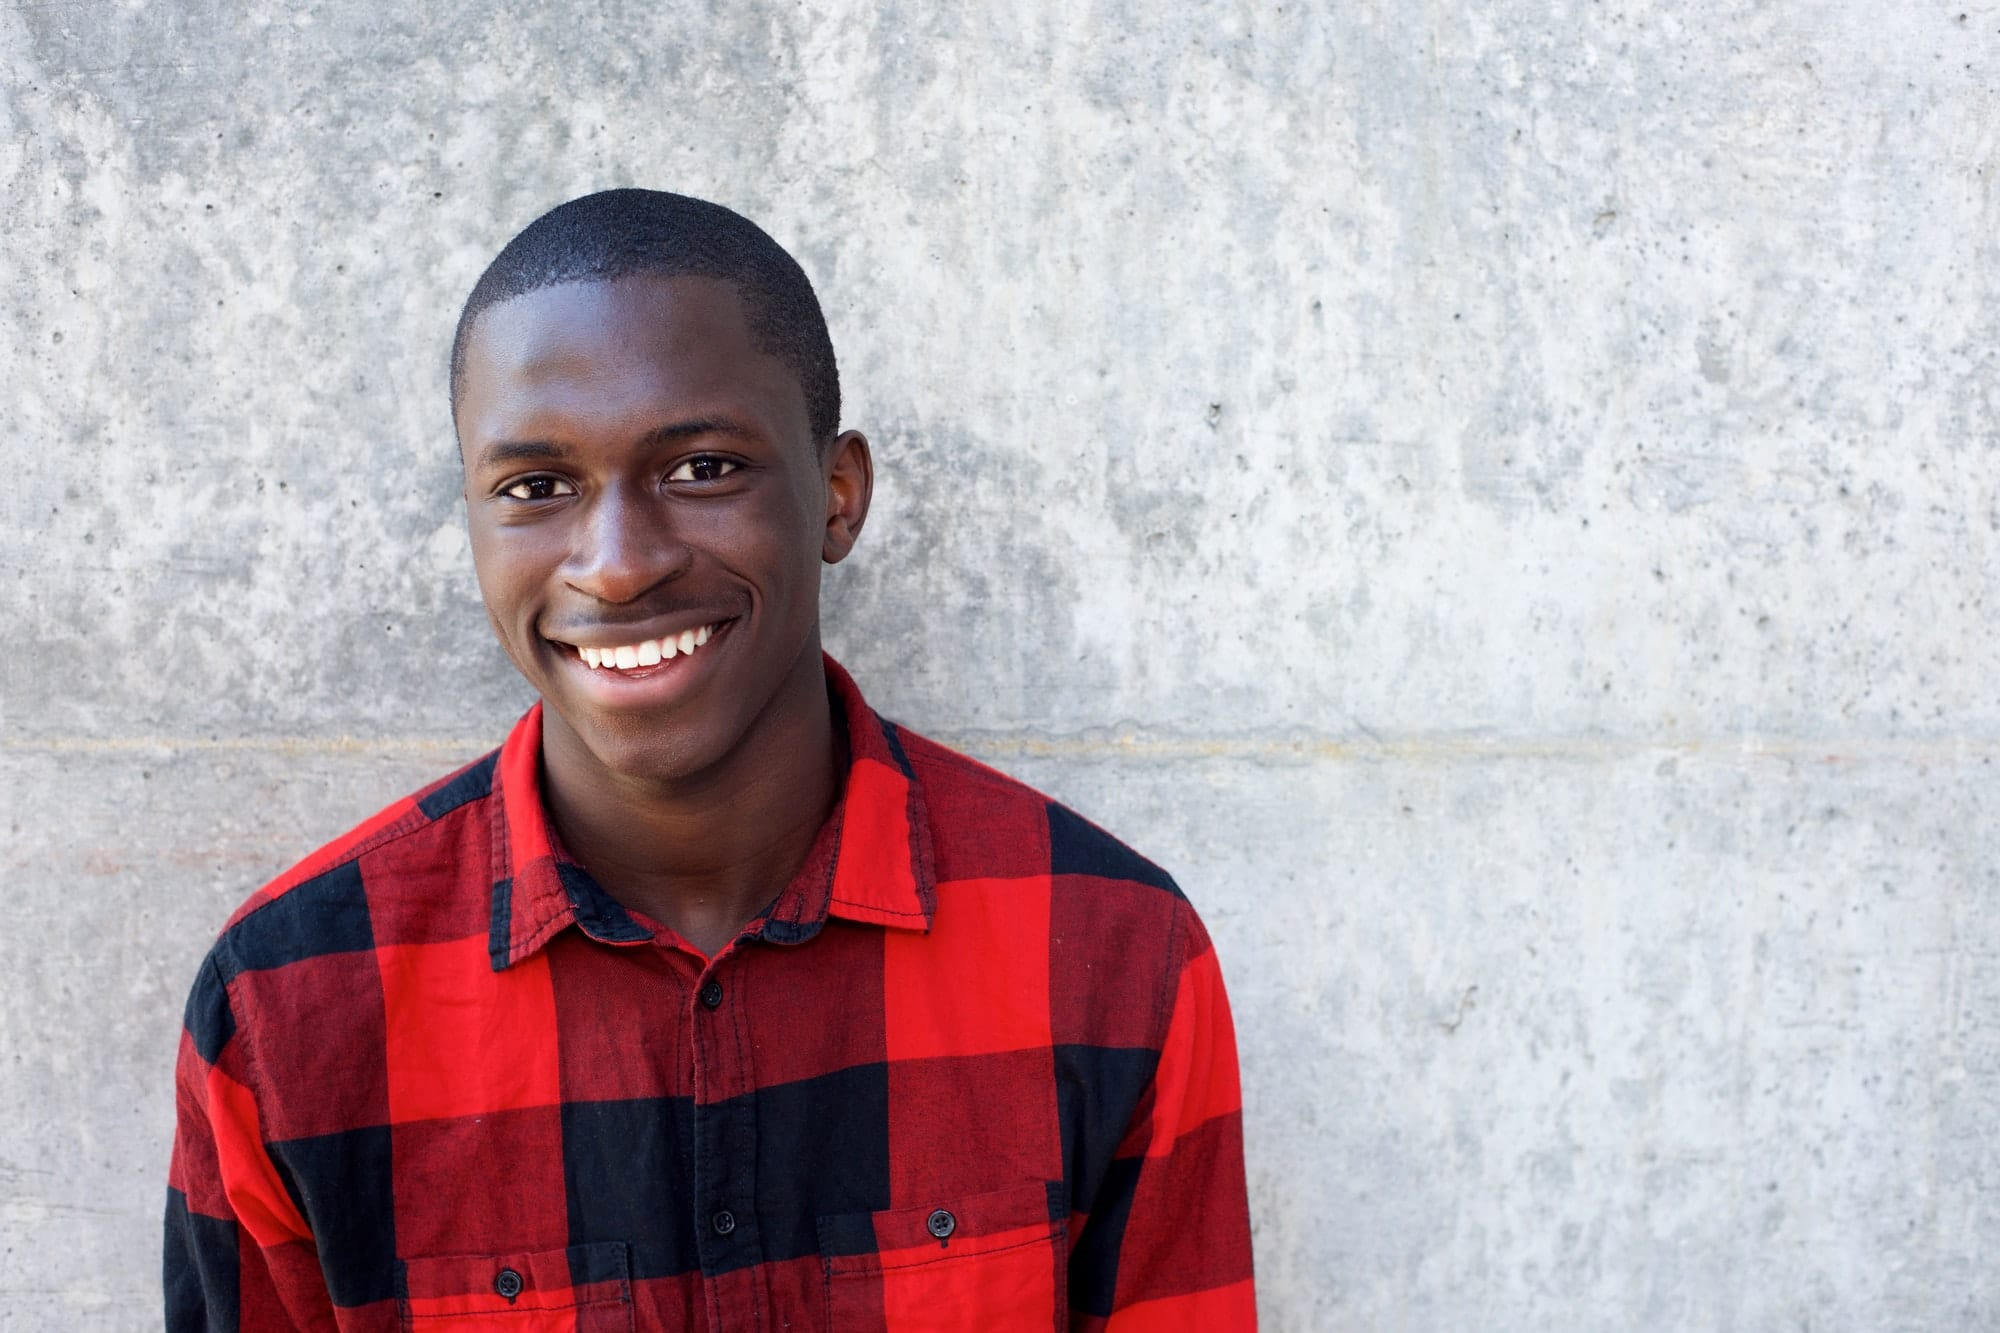 Smiling young african male model standing against wall